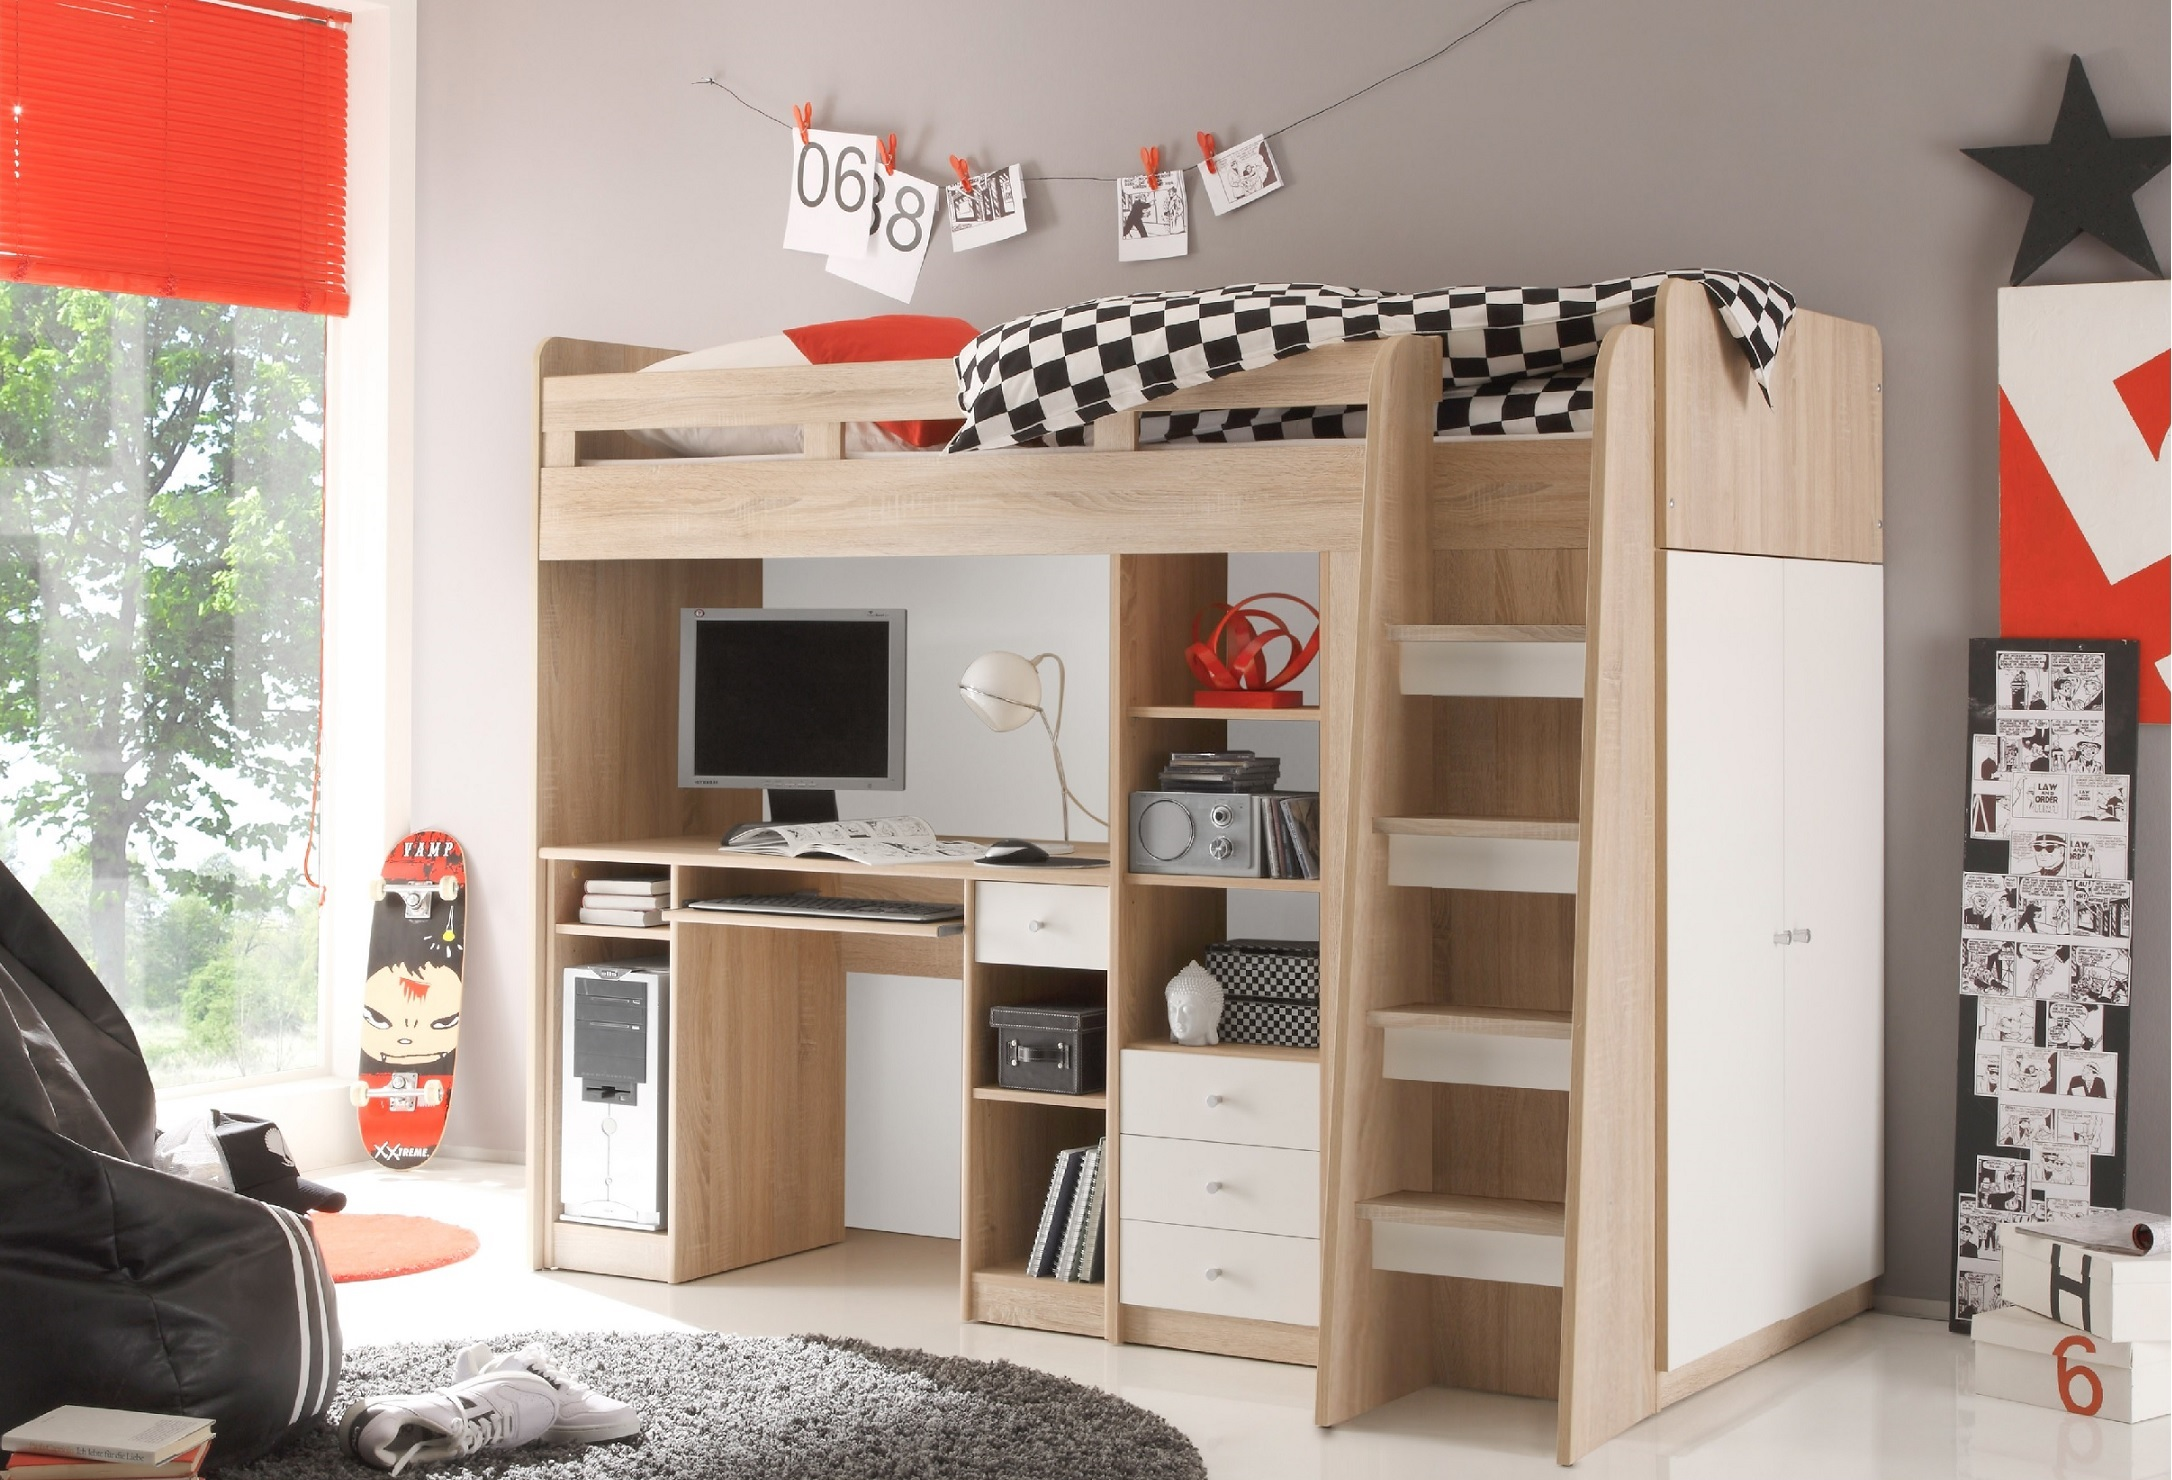 hochbett mit stufen alstdesign wir bringen holz in form kinderzimmer hochbett stufen komplett. Black Bedroom Furniture Sets. Home Design Ideas